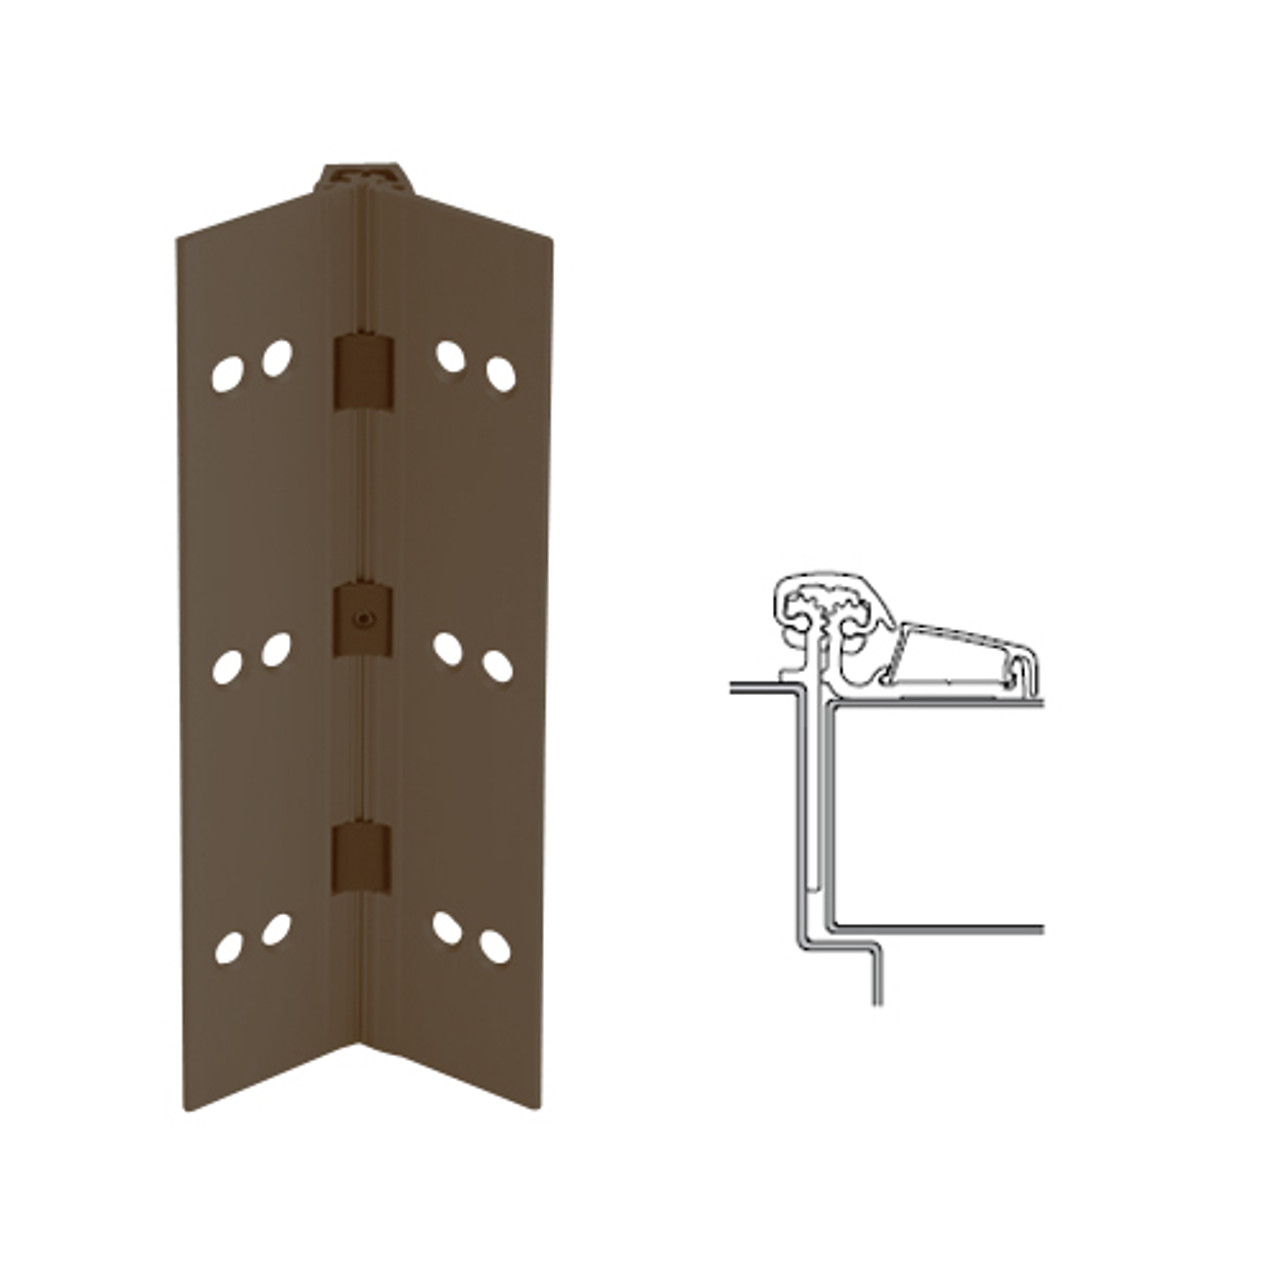 053XY-313AN-95-SECWDWD IVES Adjustable Half Surface Continuous Geared Hinges with Security Screws - Hex Pin Drive in Dark Bronze Anodized